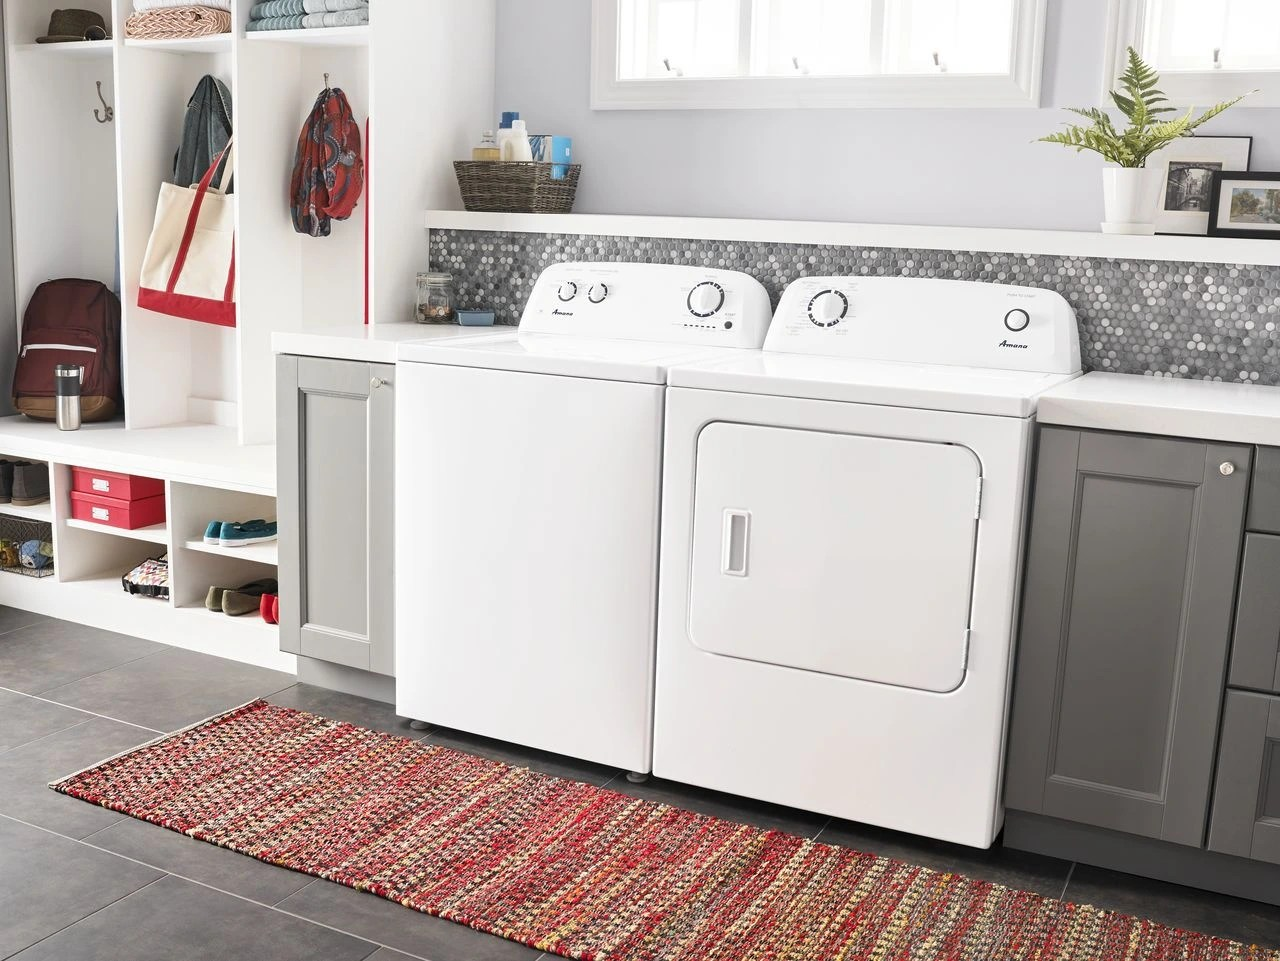 hight resolution of amana 6 5 cu ft white front load electric dryer ned4655ew